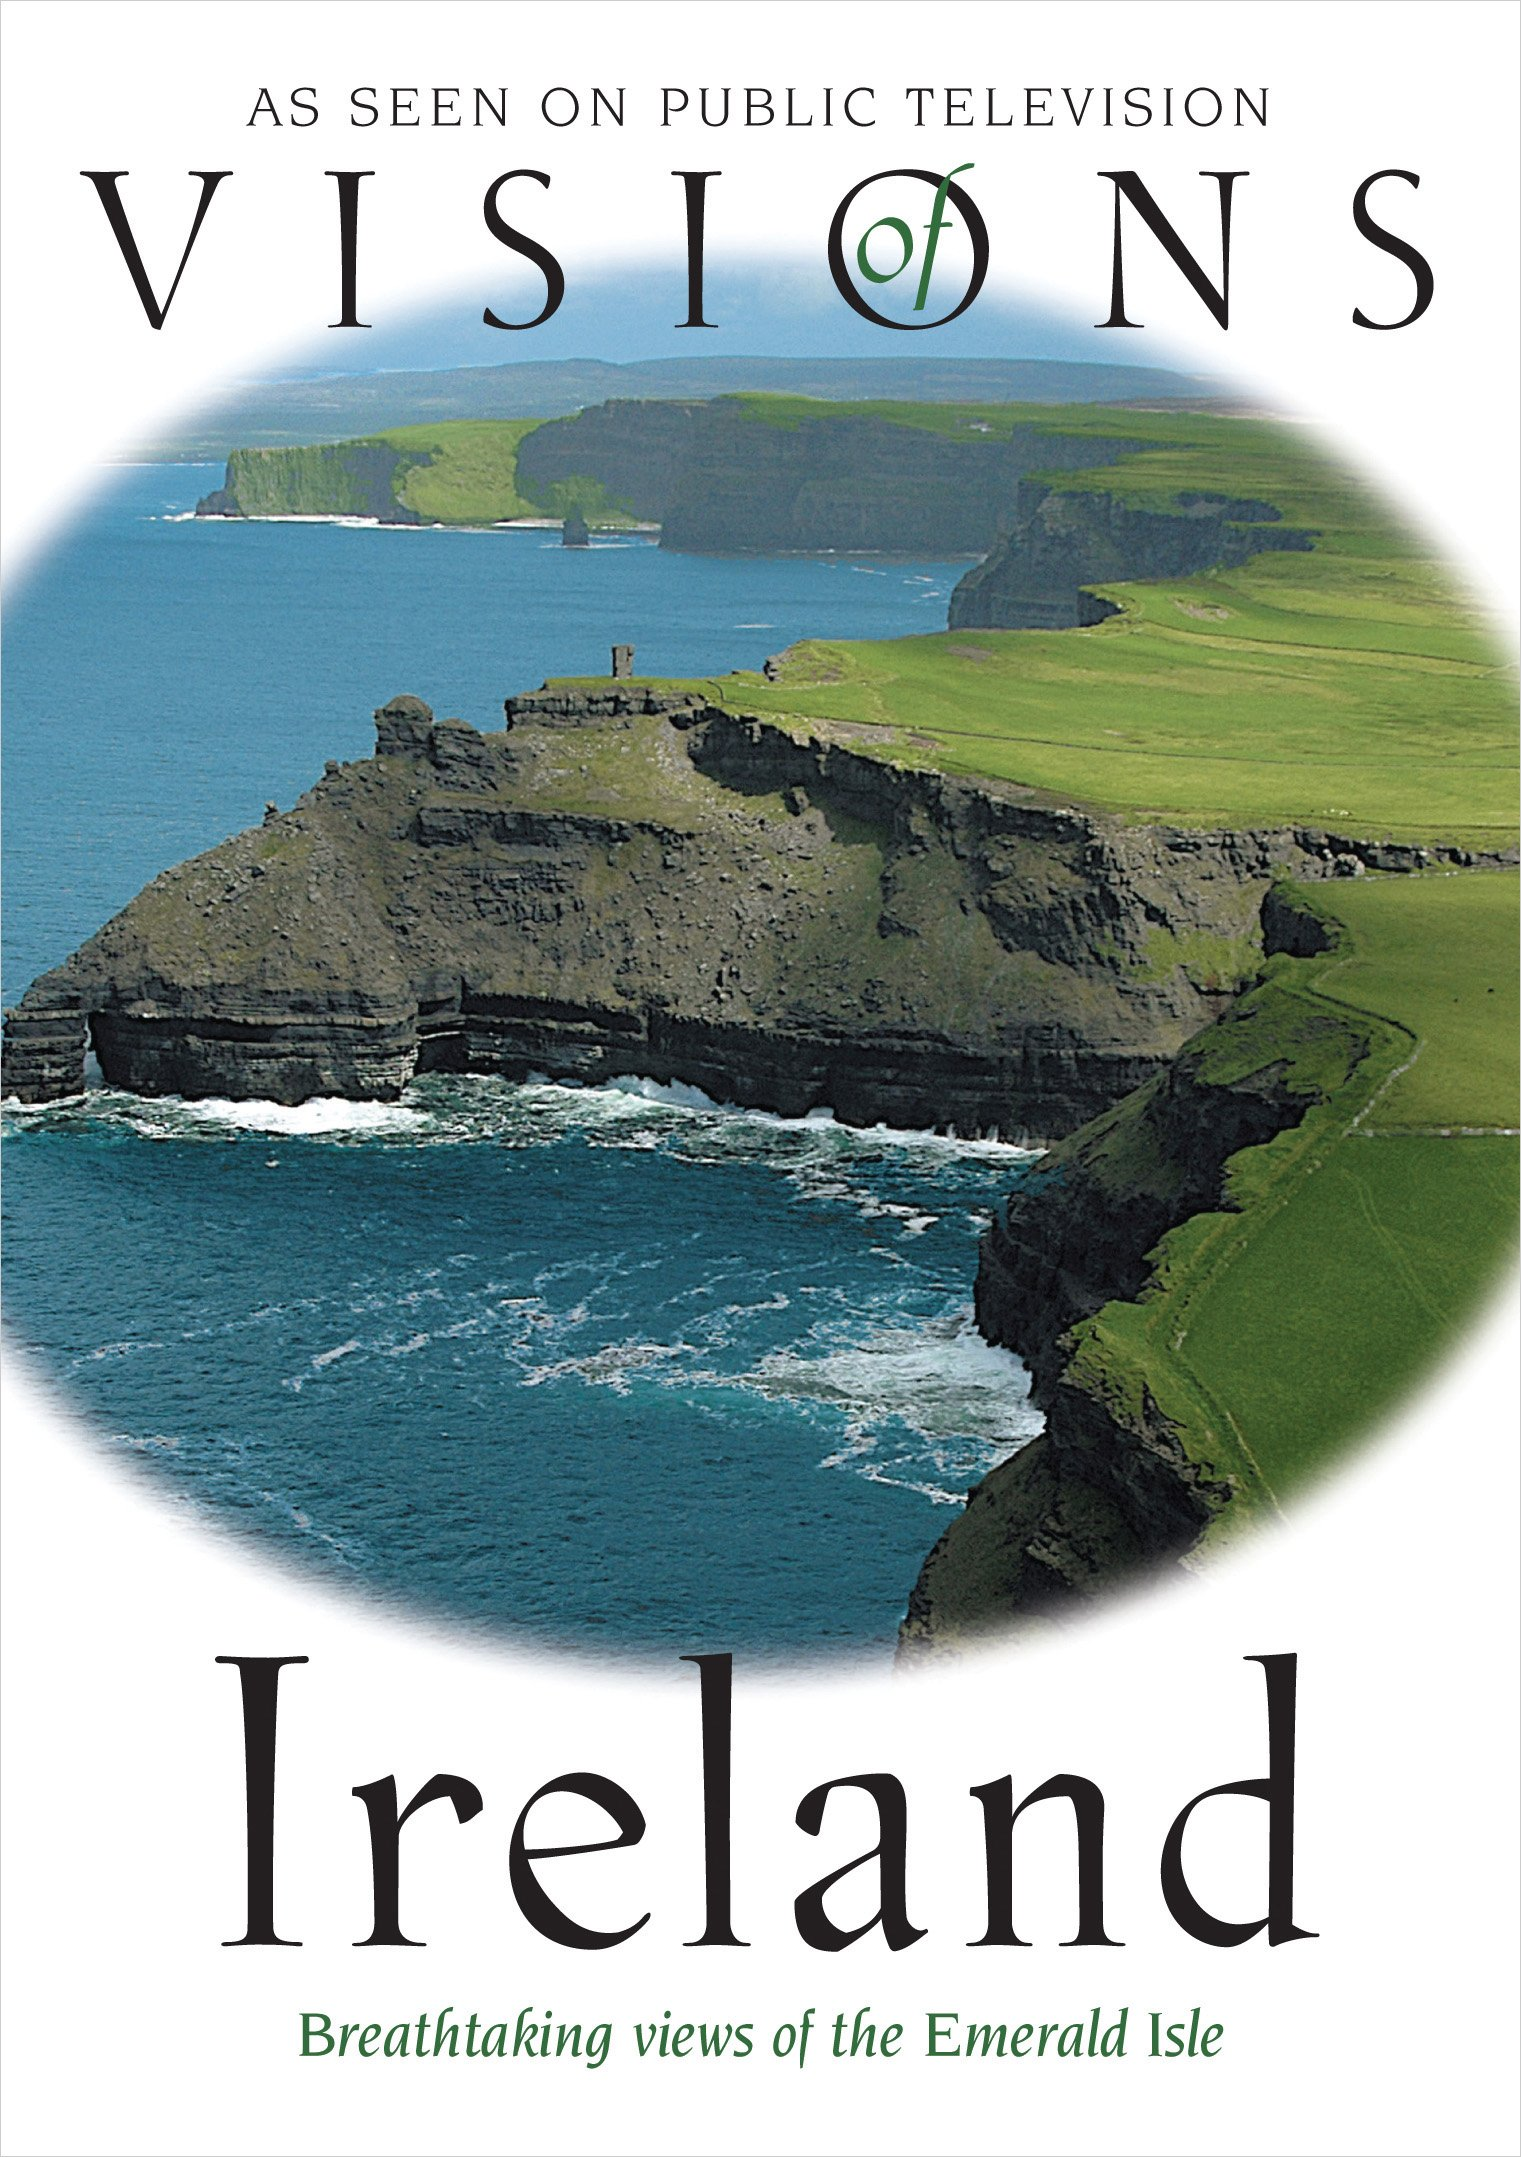 VISIONS OF IRELAND by Unknown